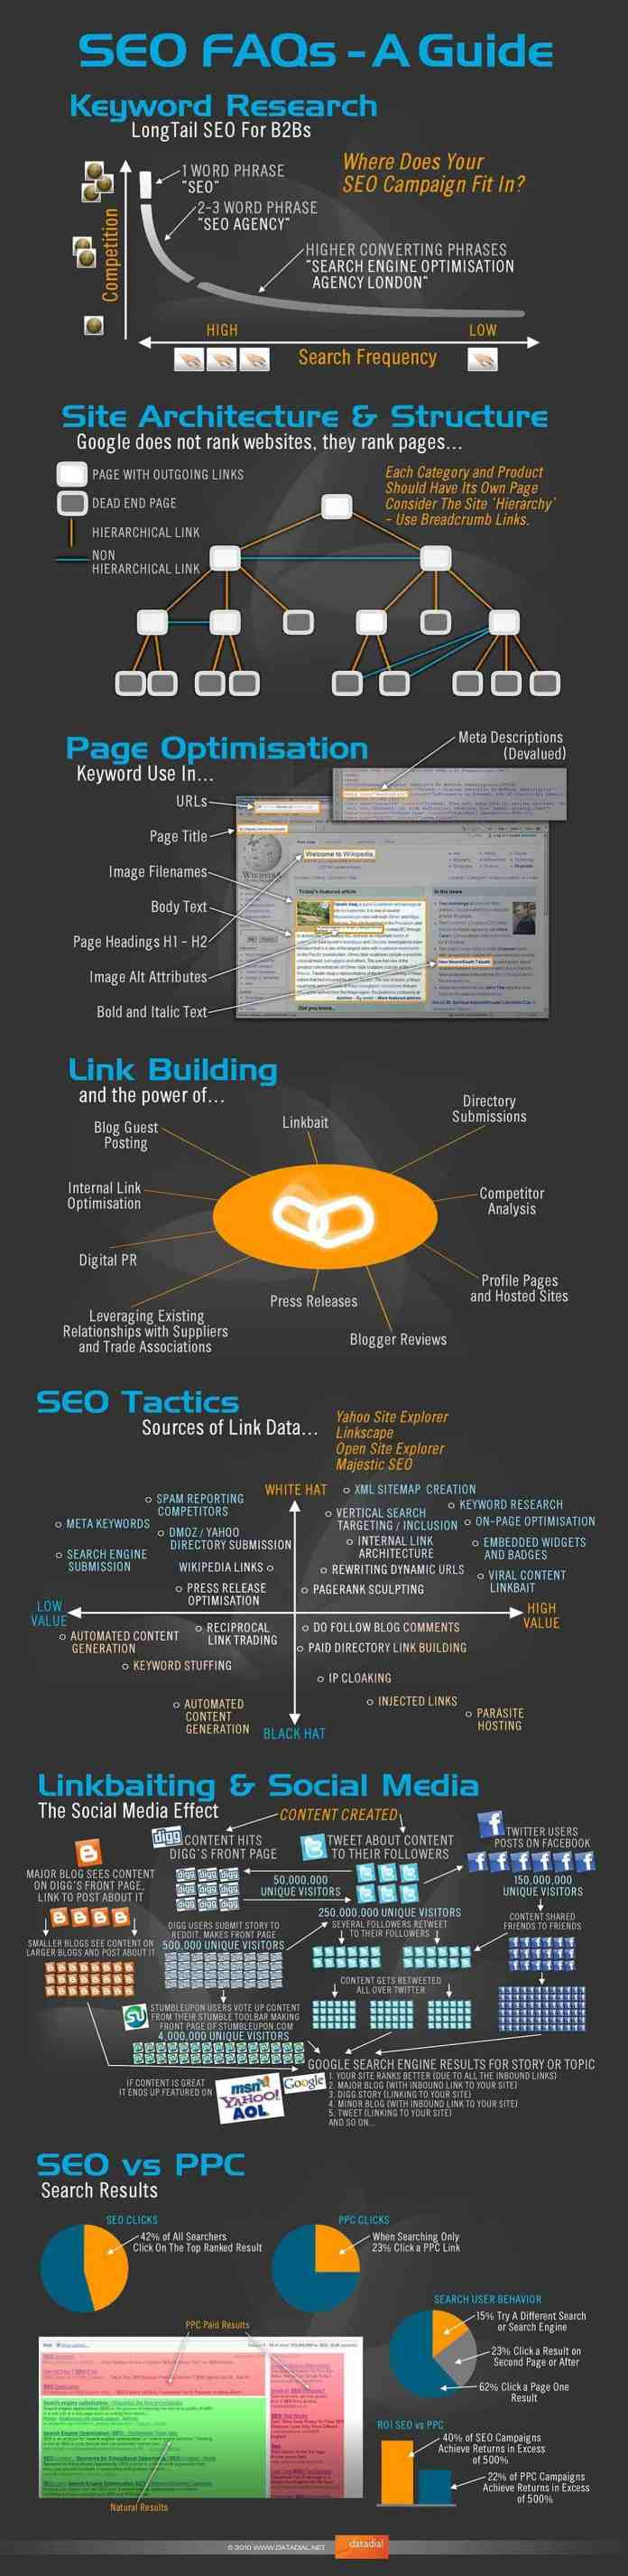 seo-link-building-faq-infographic